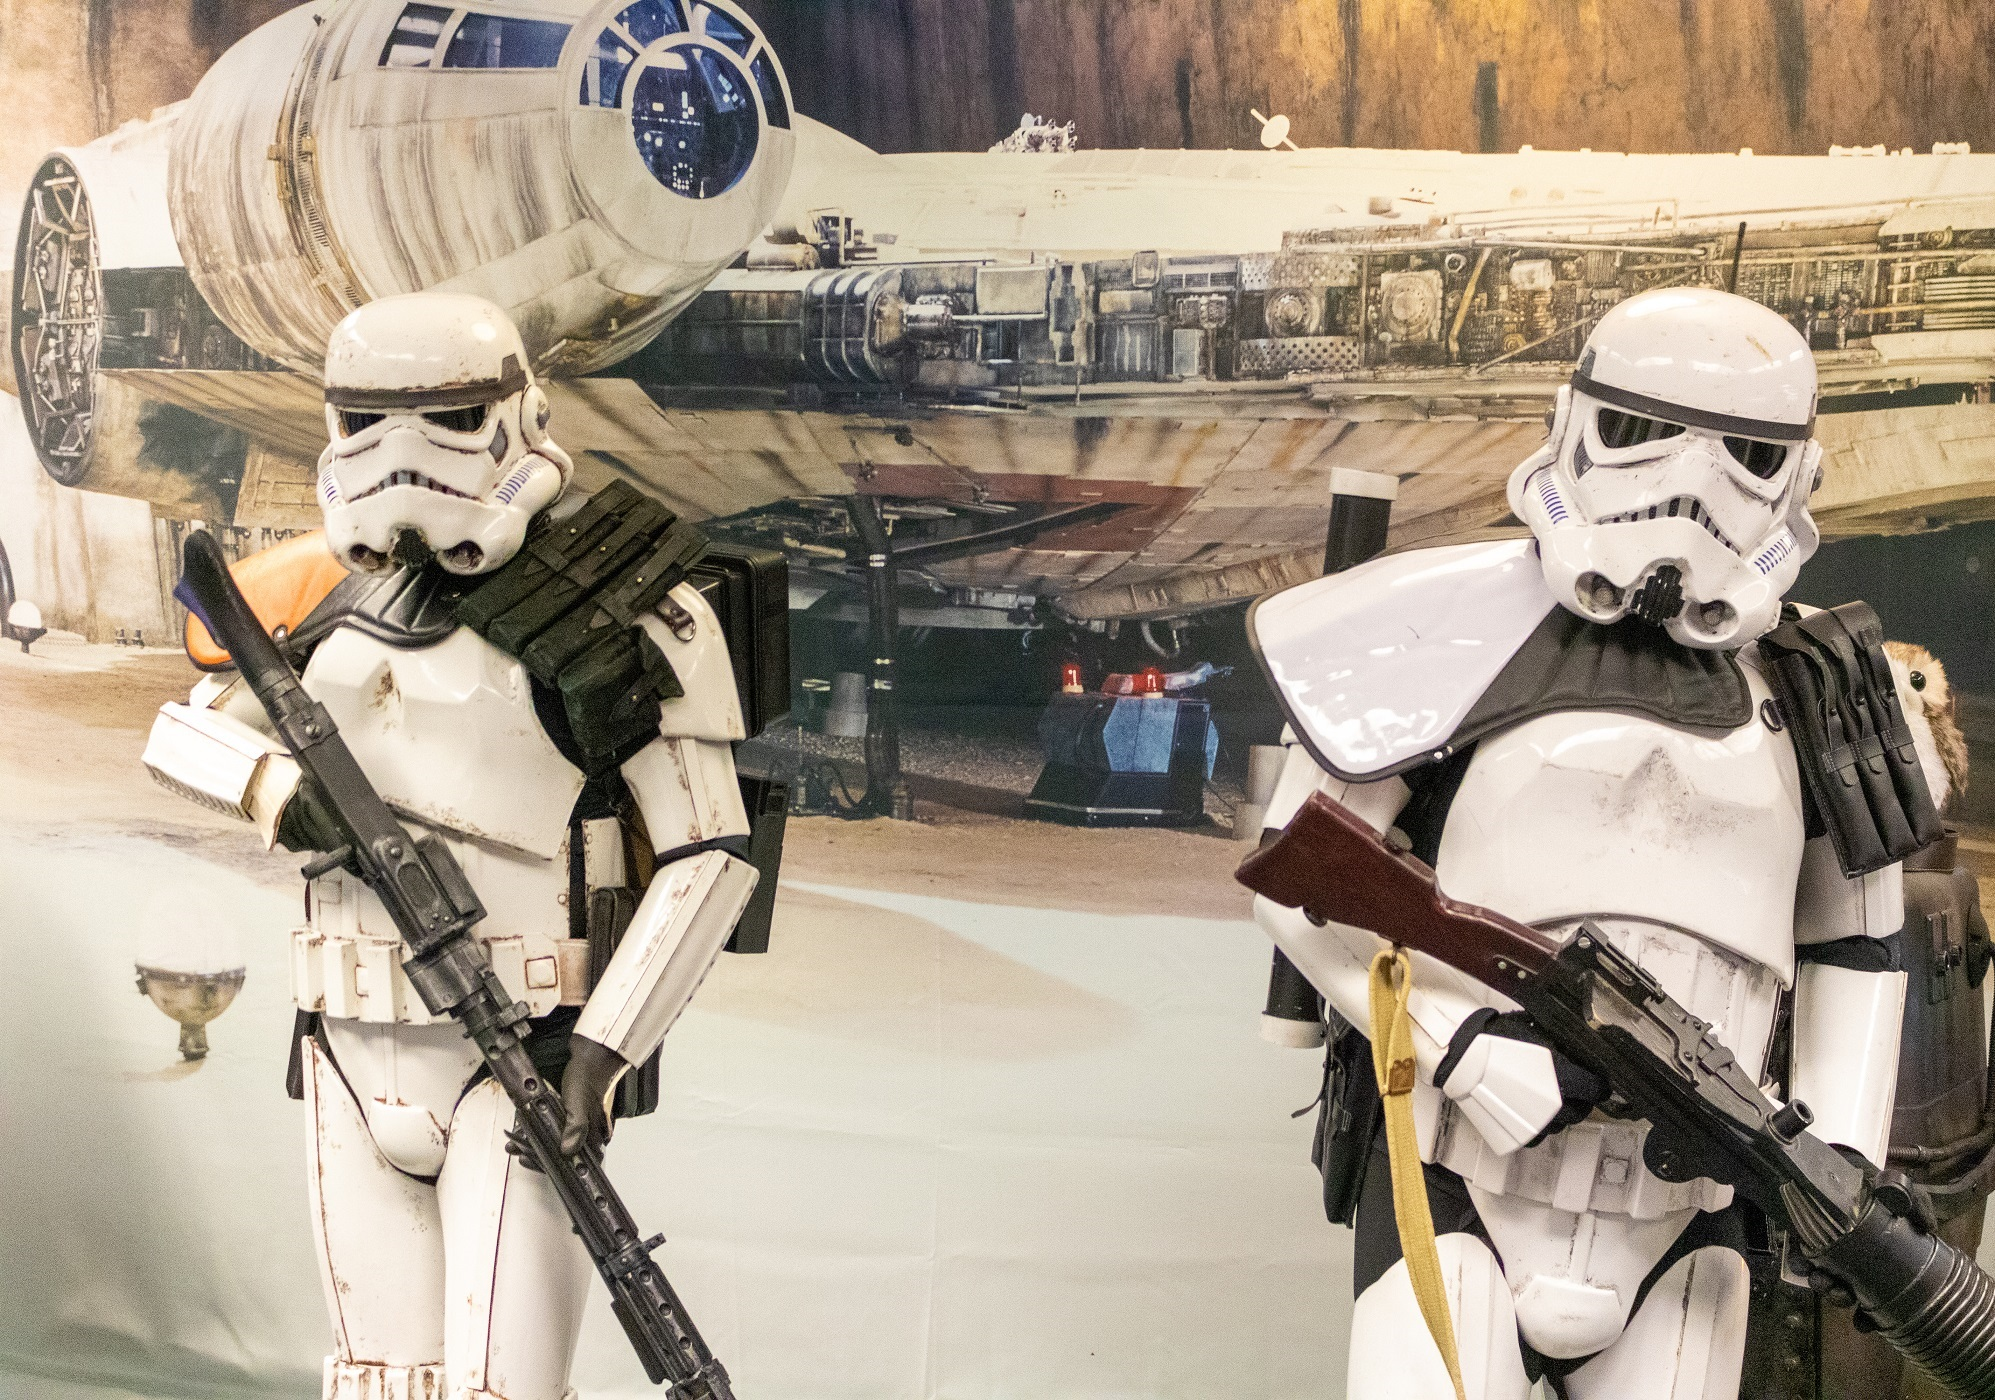 Star Wars Reads Day 2019 - Storm Trooper and Sand Trooper in front of Millennium Falcon